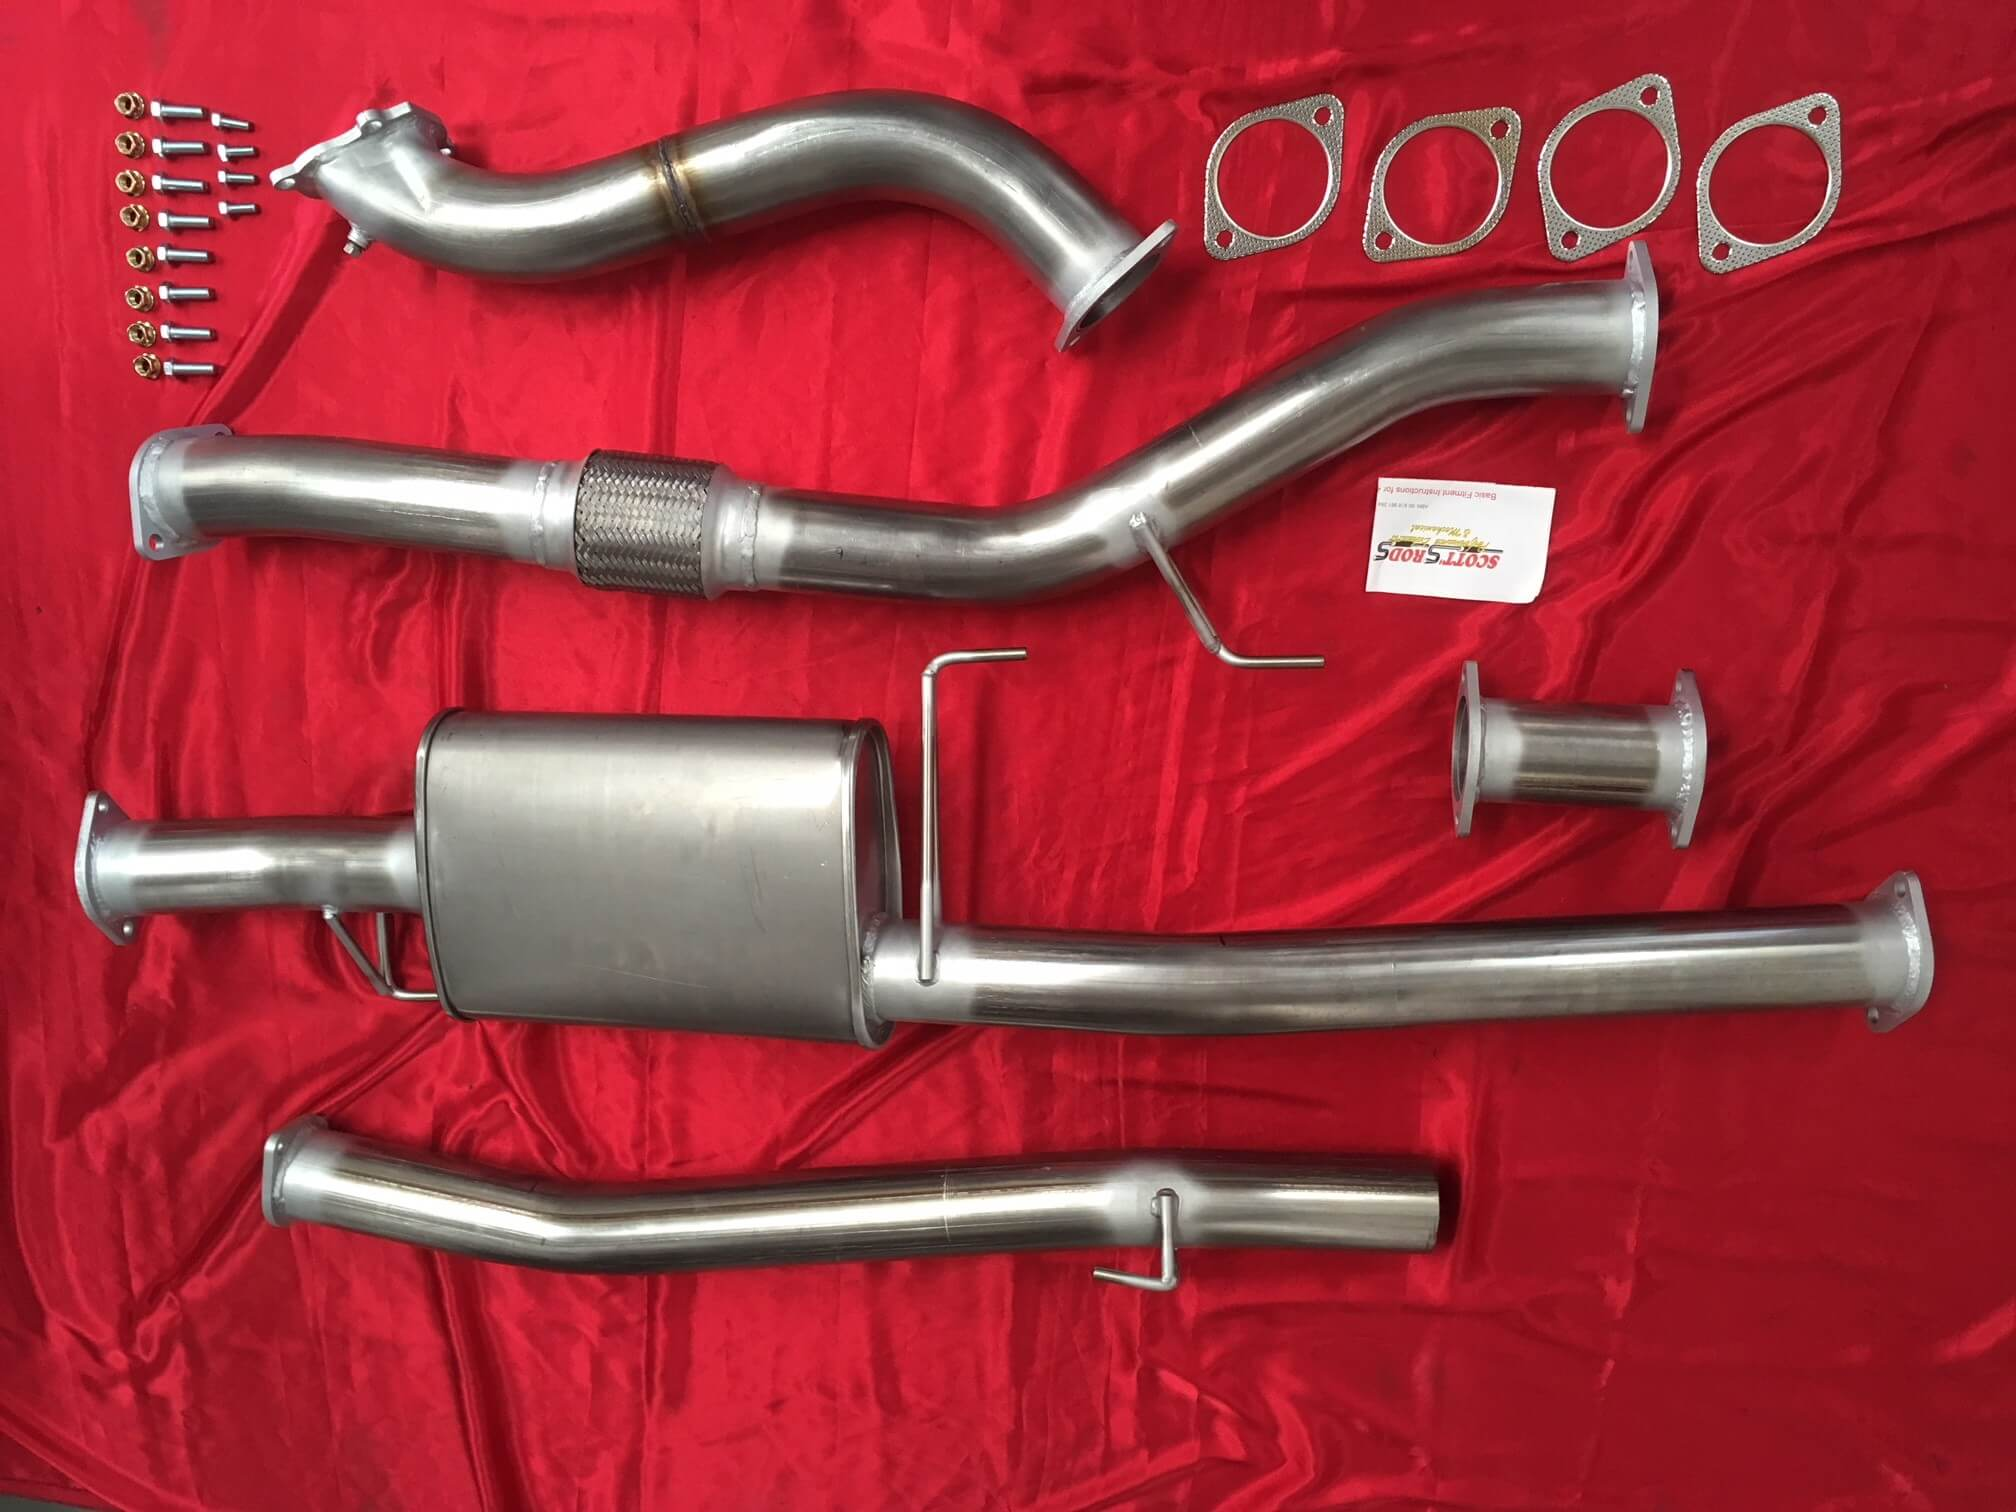 Turbo Diesel 4x4 Exhaust Kits